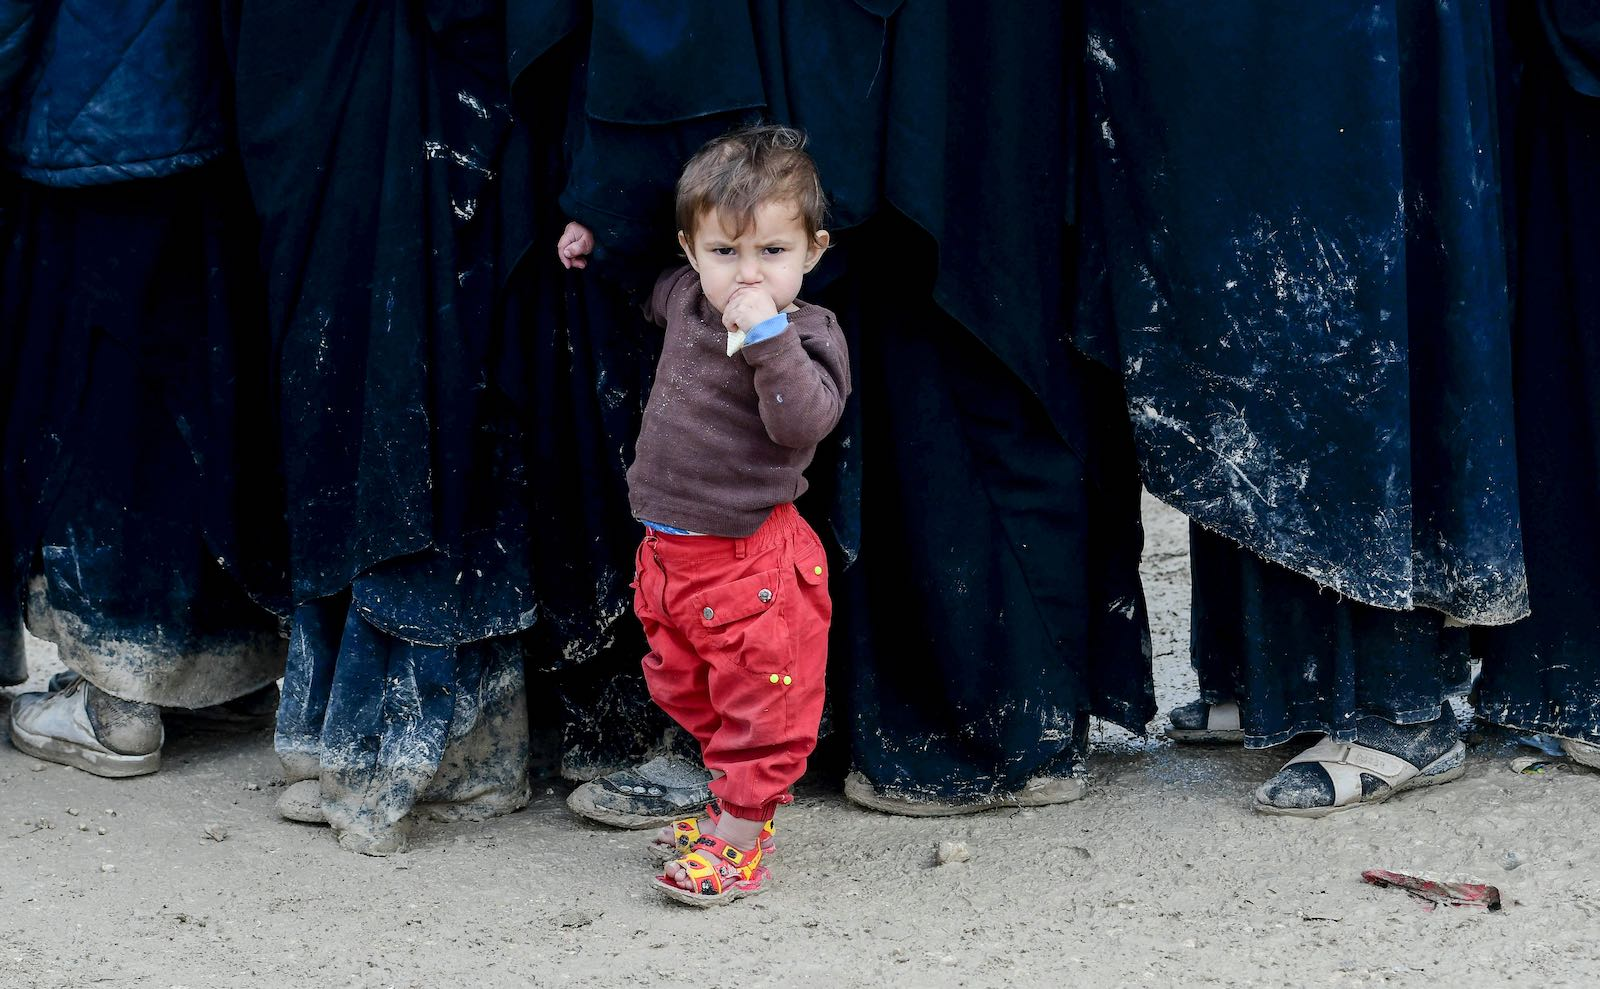 A child stands in queue in al-Hol camp, housing relatives of ISIS members, northeastern Syria (Photo: Giuseppe Cacace via Getty)